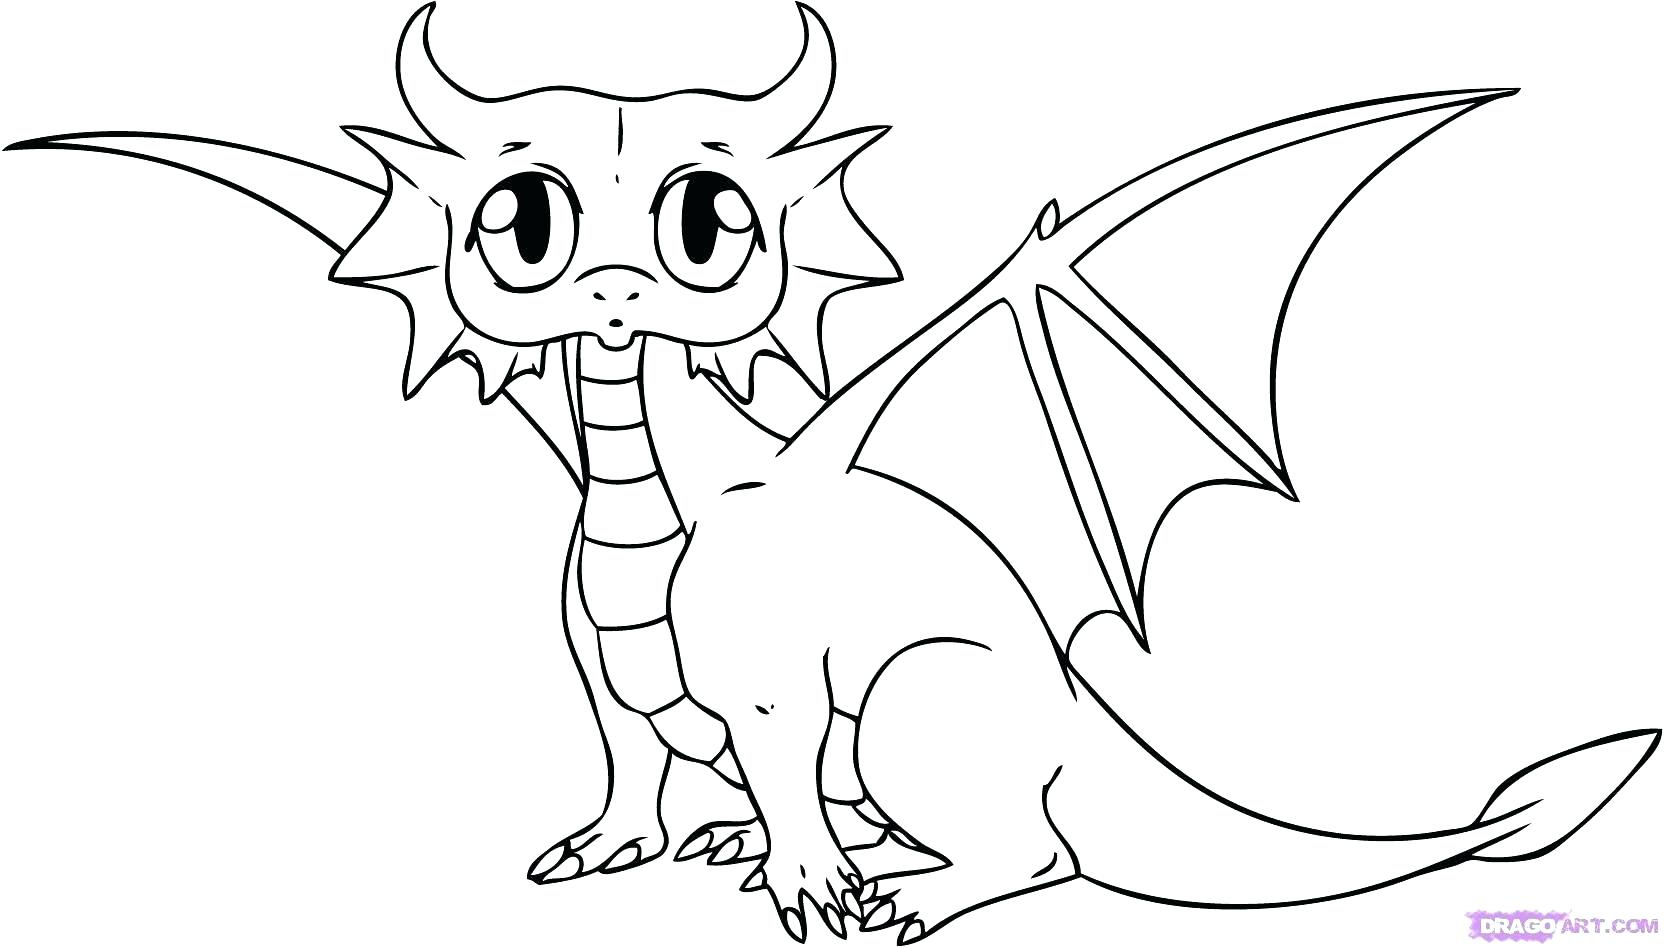 1664x948 Cute Baby Dragon Coloring Pages For Kids Printable Dragons